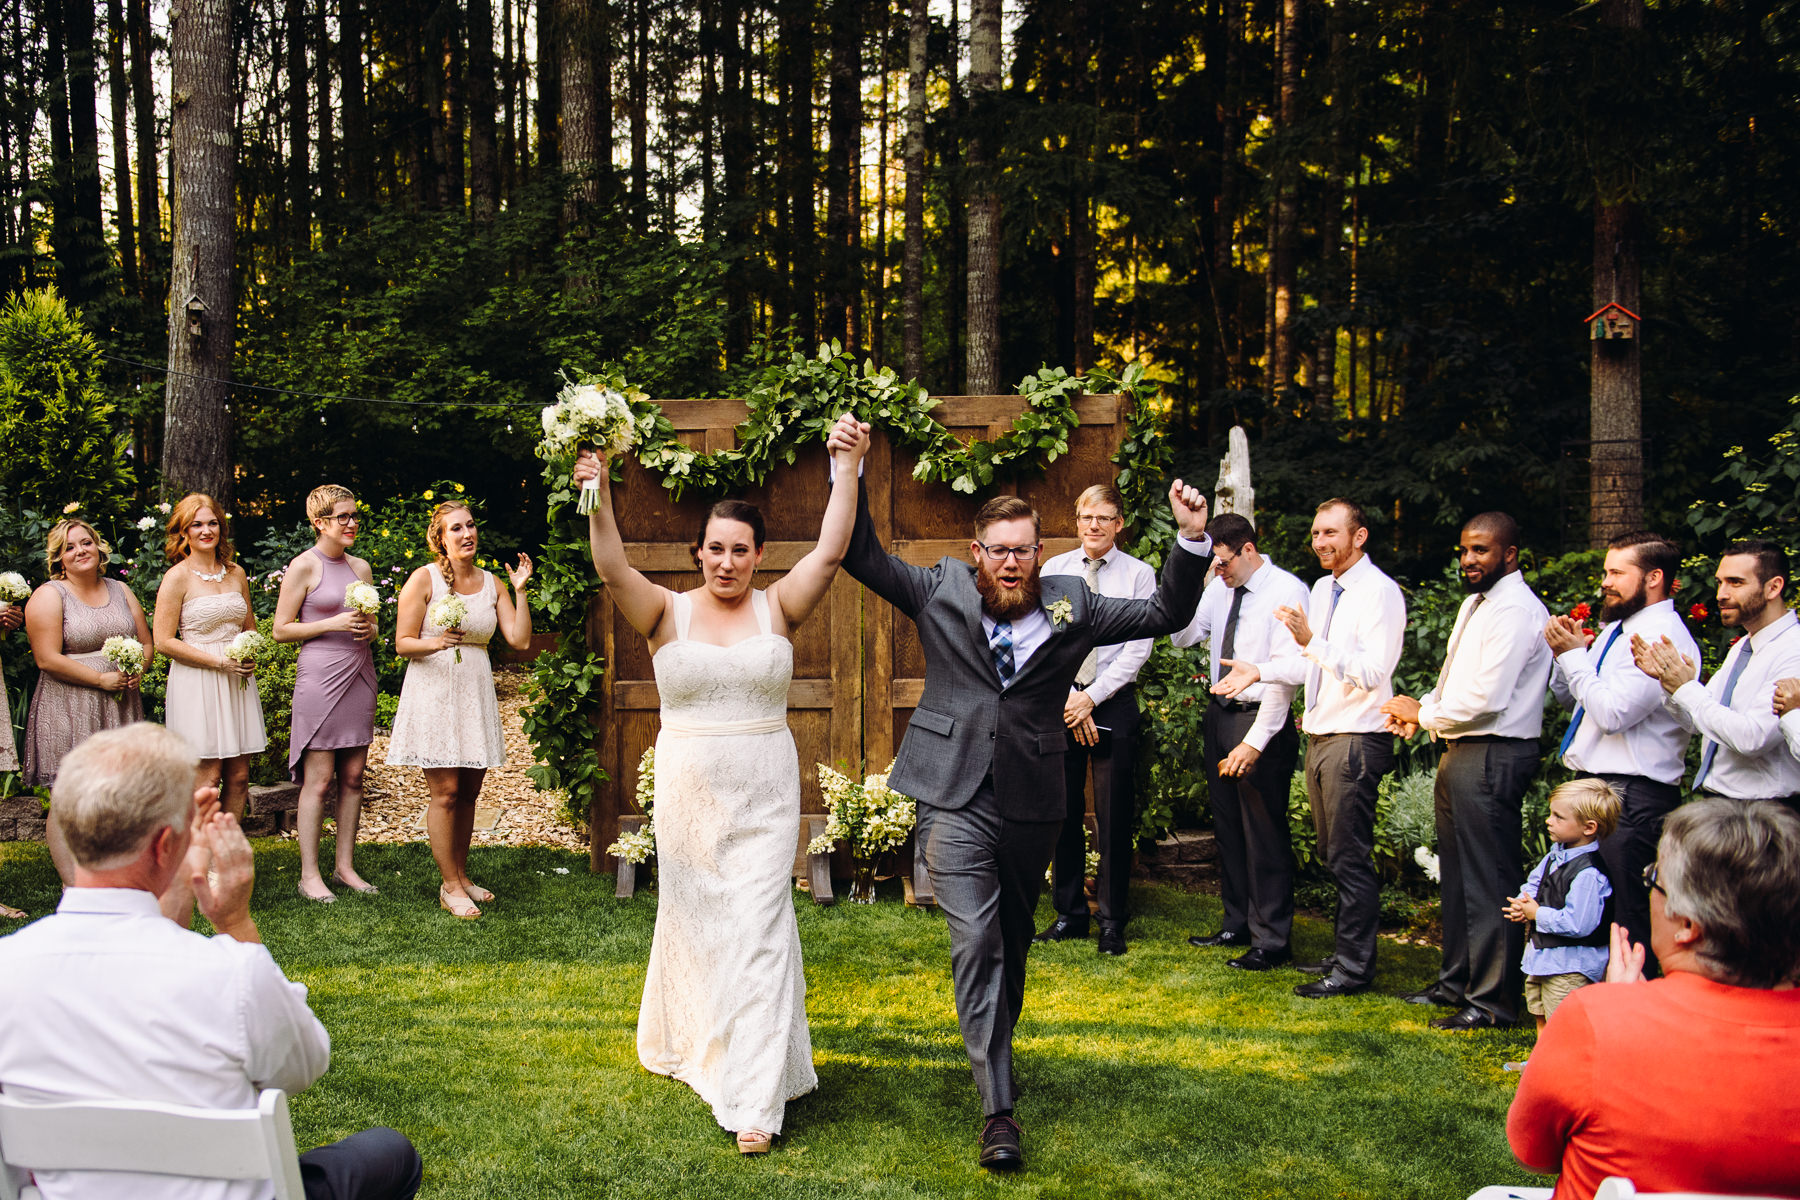 backyard forest wedding